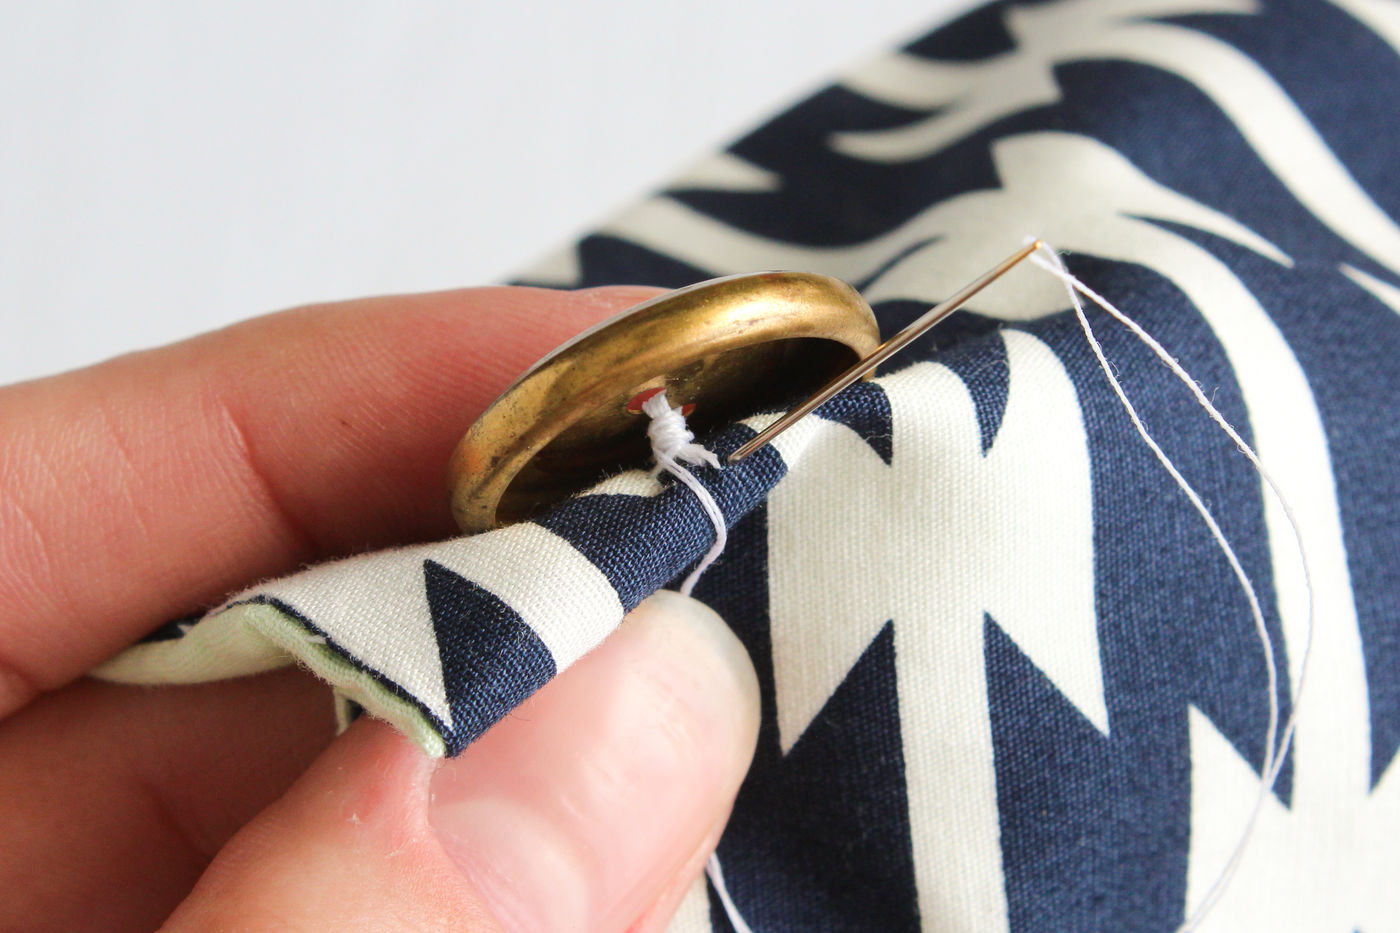 Sewing on a Button + Class Conclusion